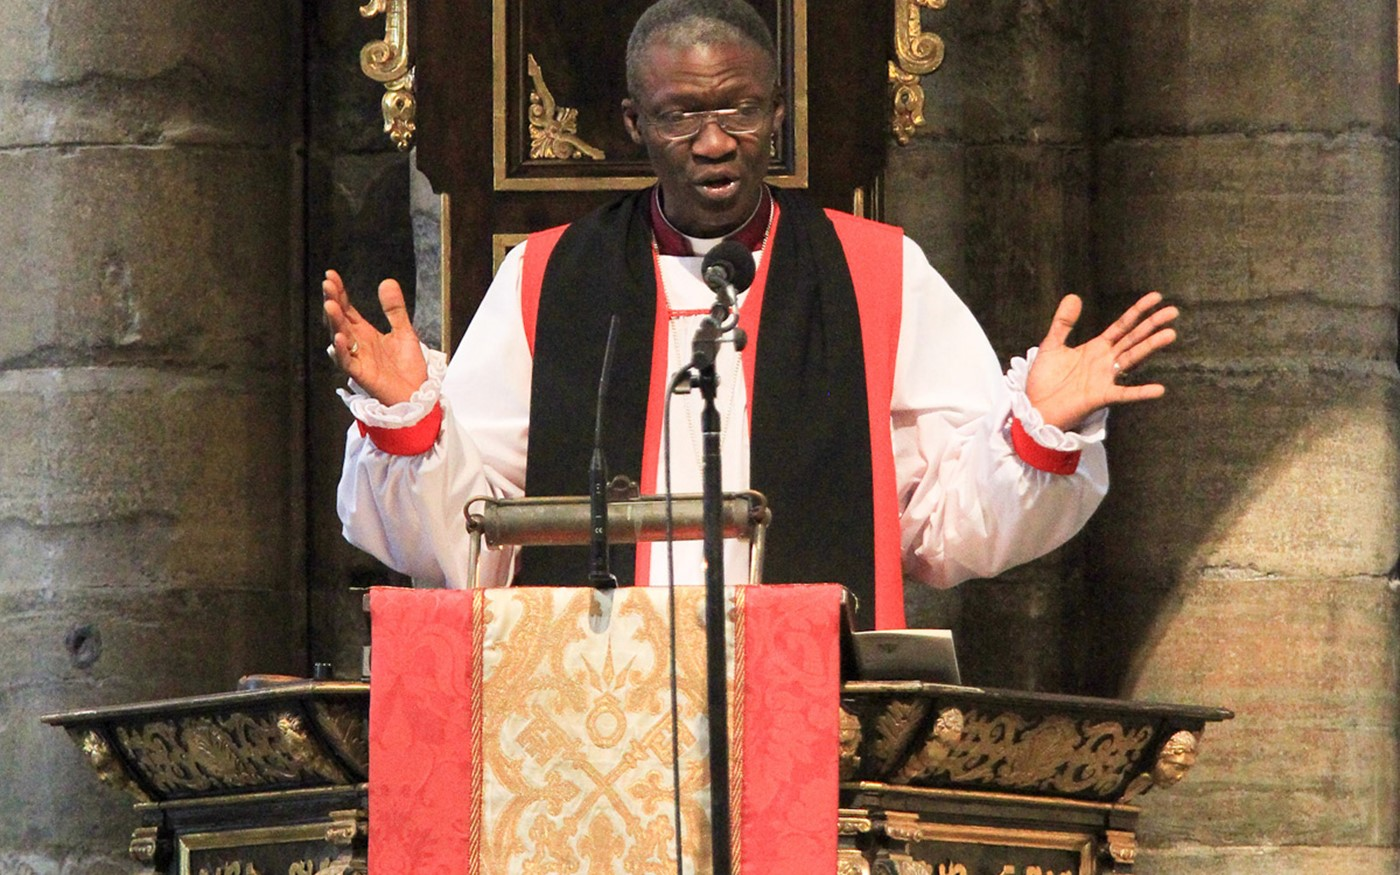 The Right Reverend Dr Karowei Dorgu, Bishop of Woolwich, gives The Address